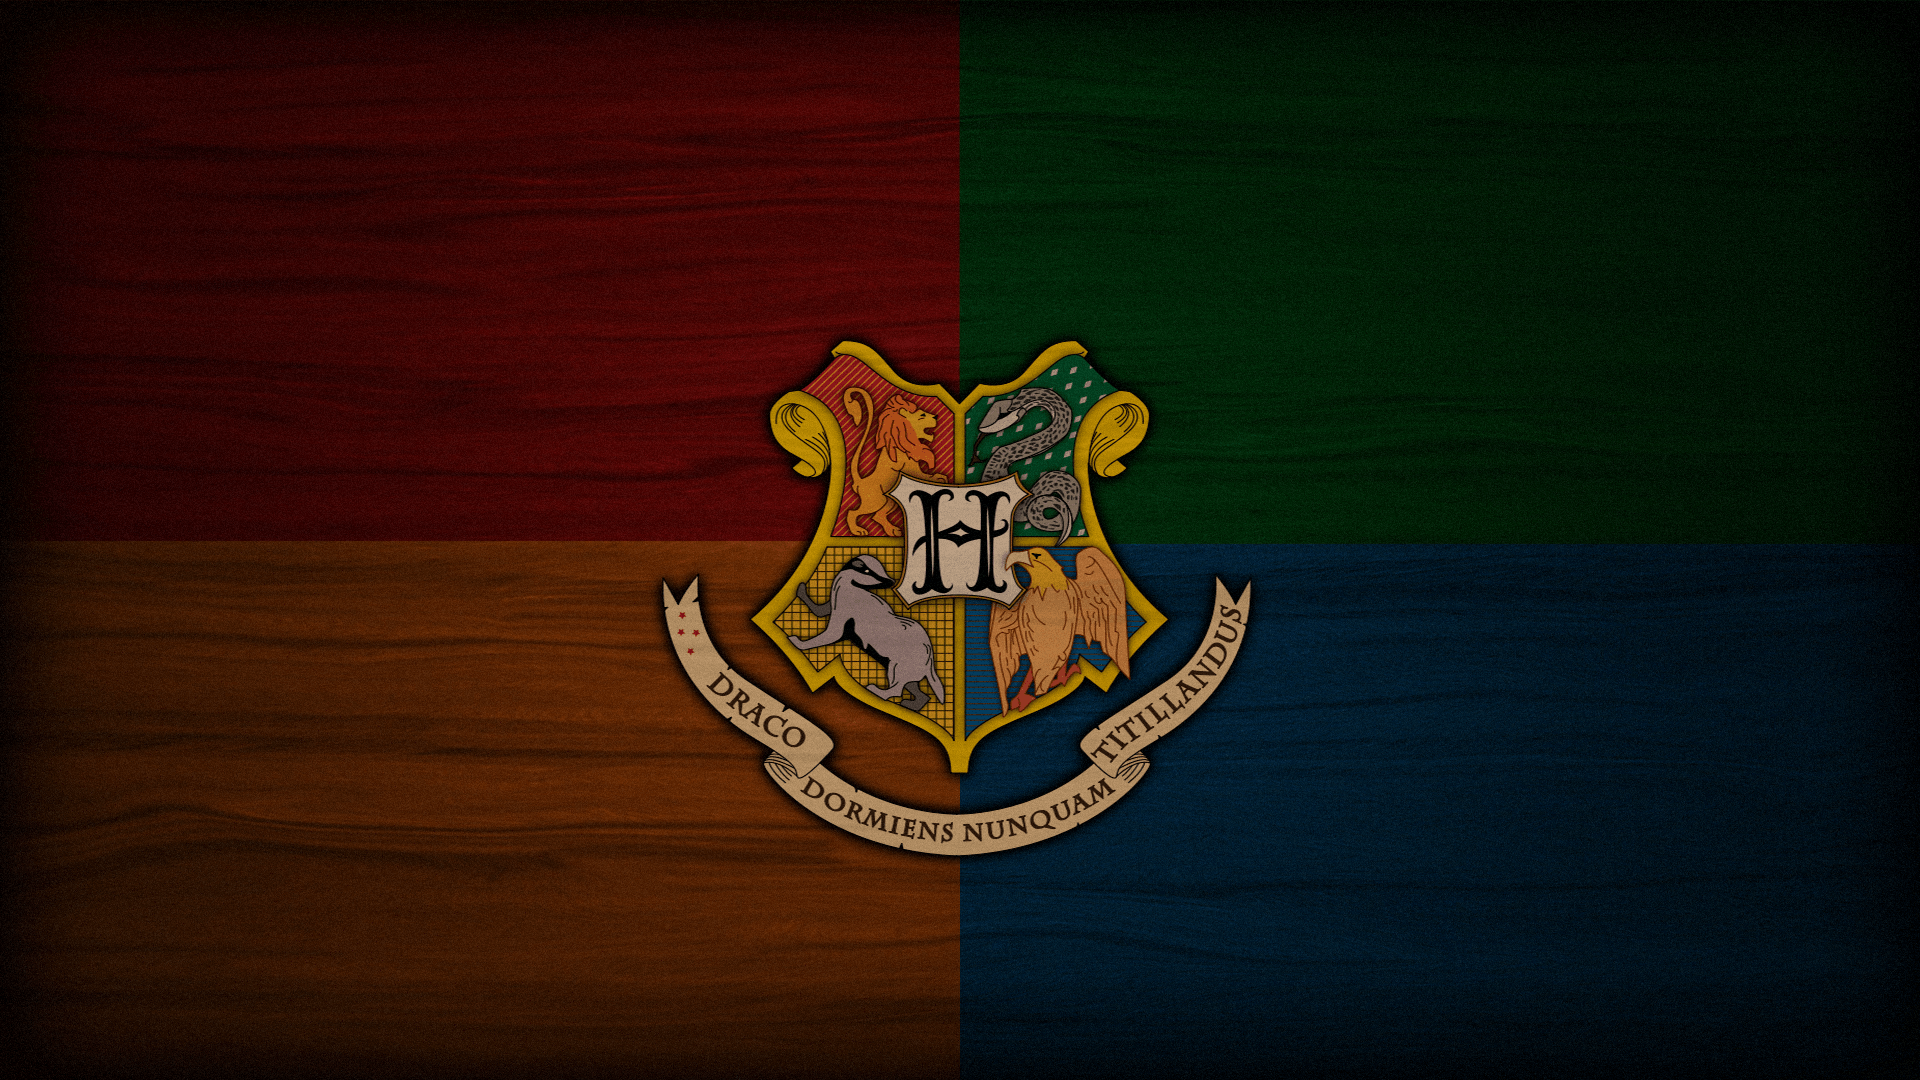 Harry Potter Houses Wallpapers Top Free Harry Potter Houses Backgrounds Wallpaperaccess